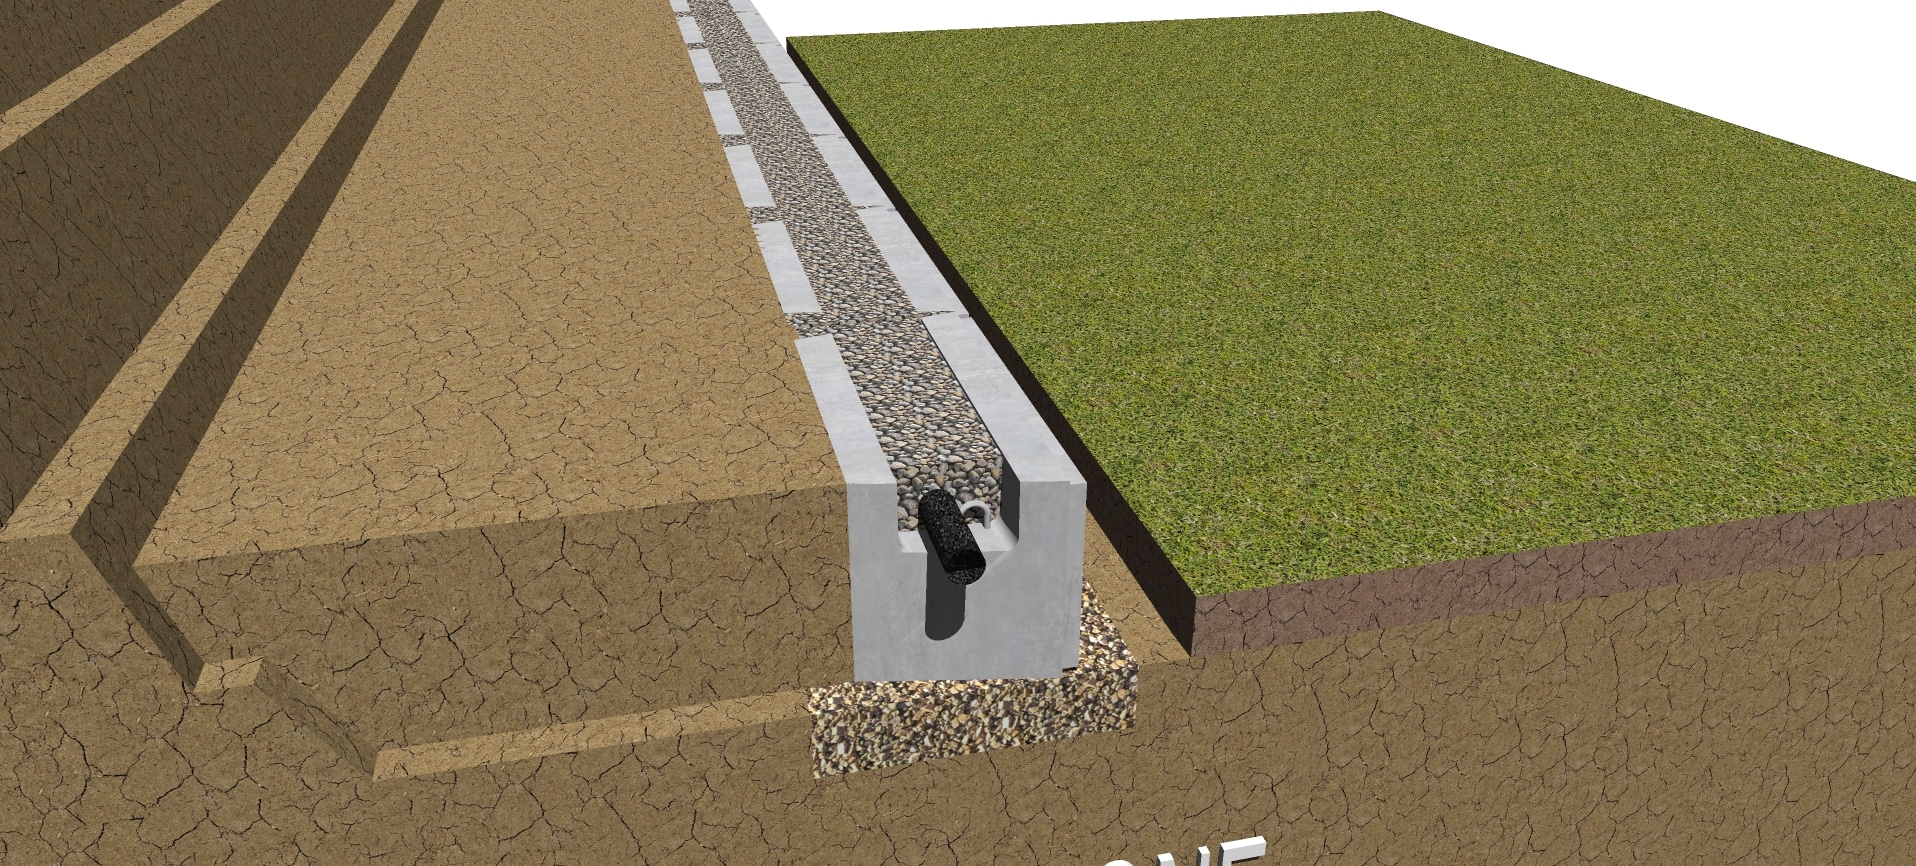 drainage gravel for geogrid retaining wall inside hollow core of MagnumStone